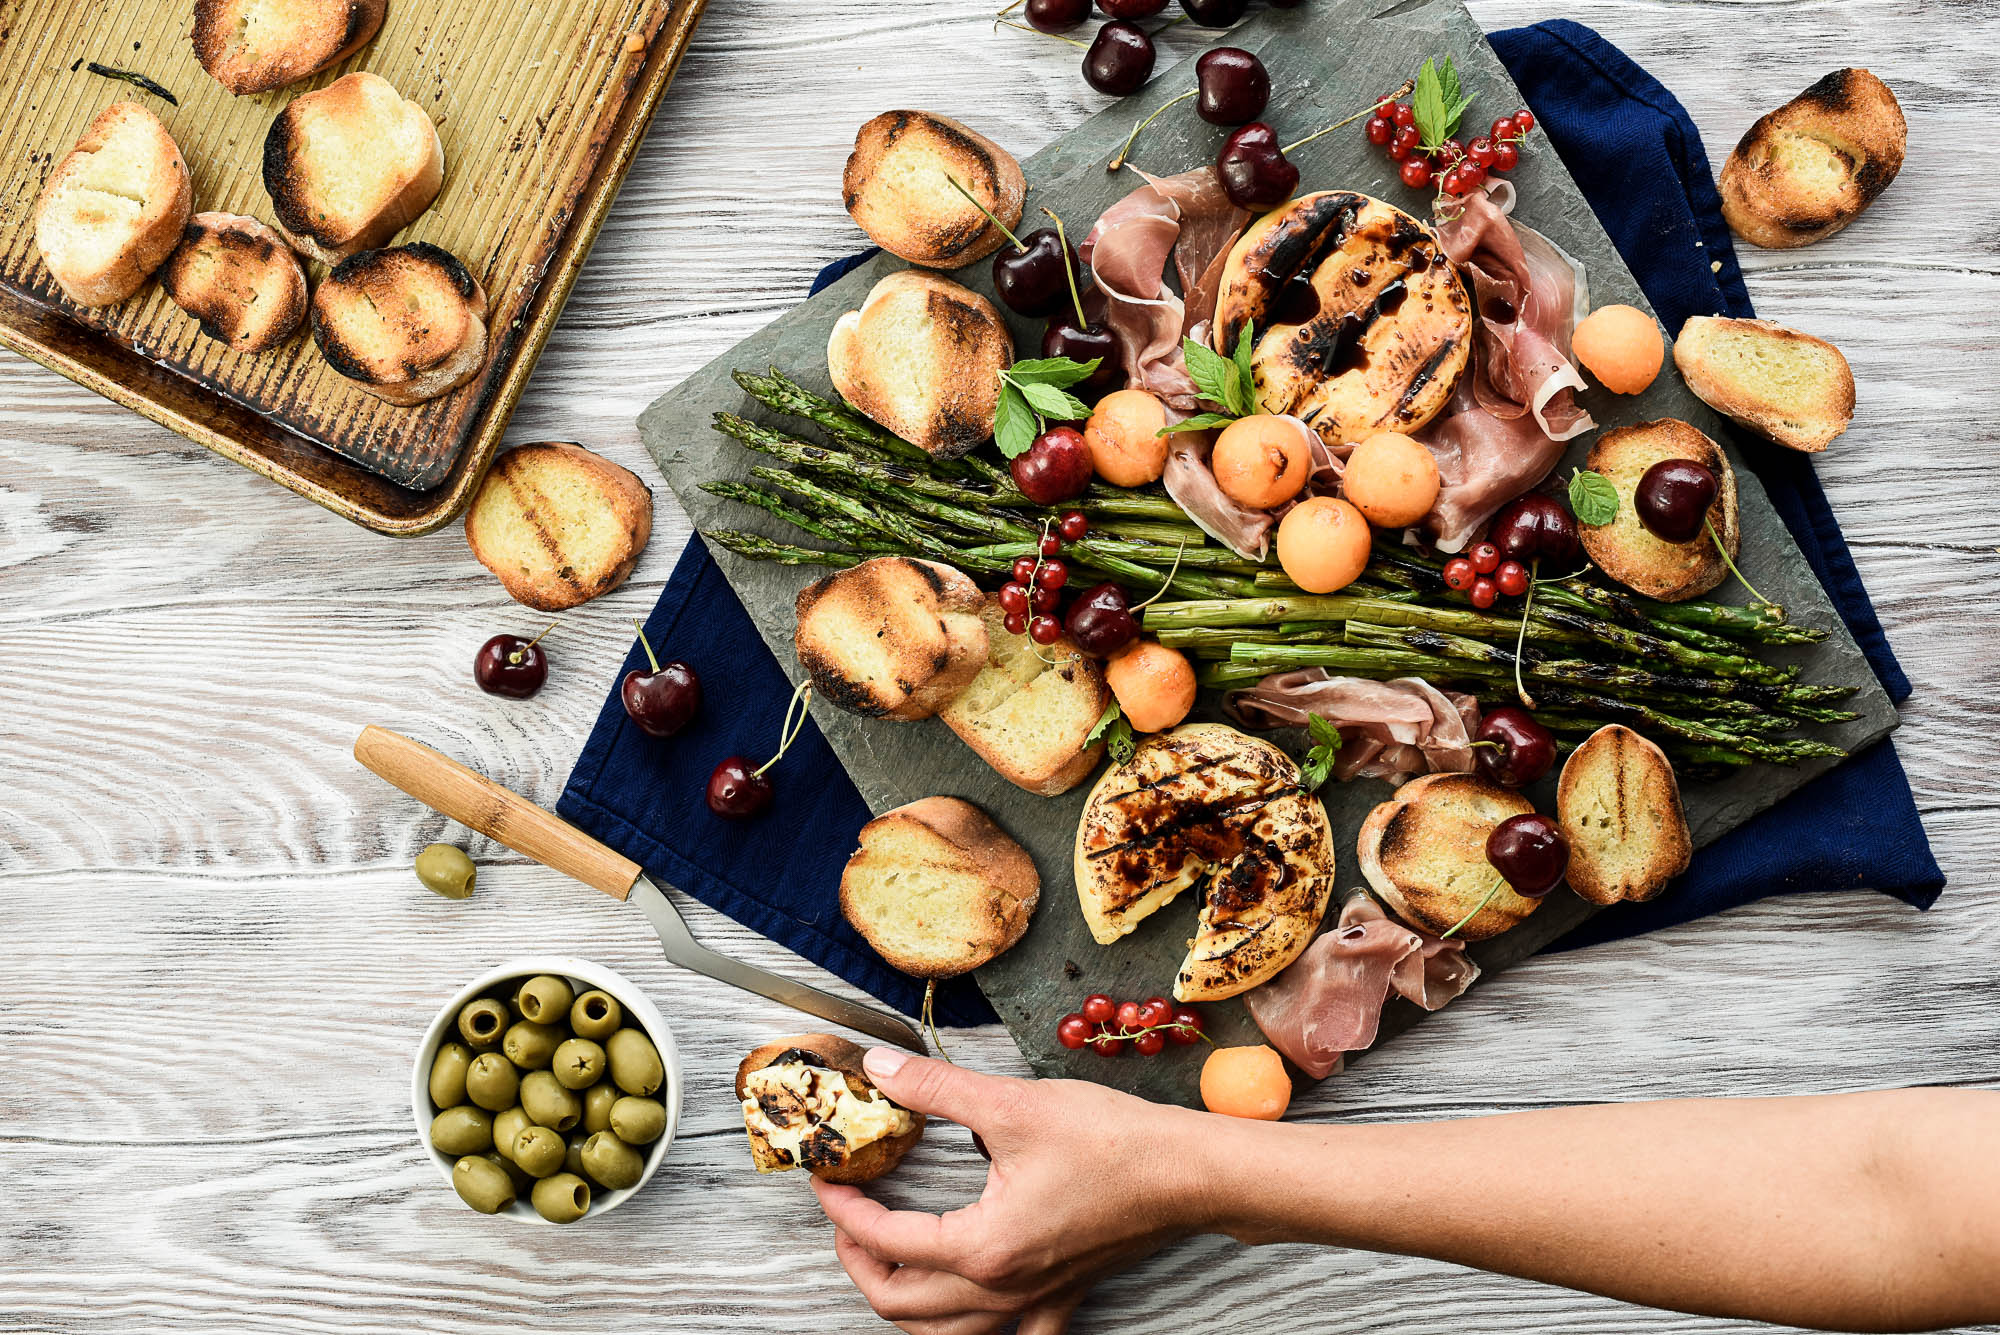 Backyard Grilling Cheese Board - with Asparagus, Prosciutto & Melon